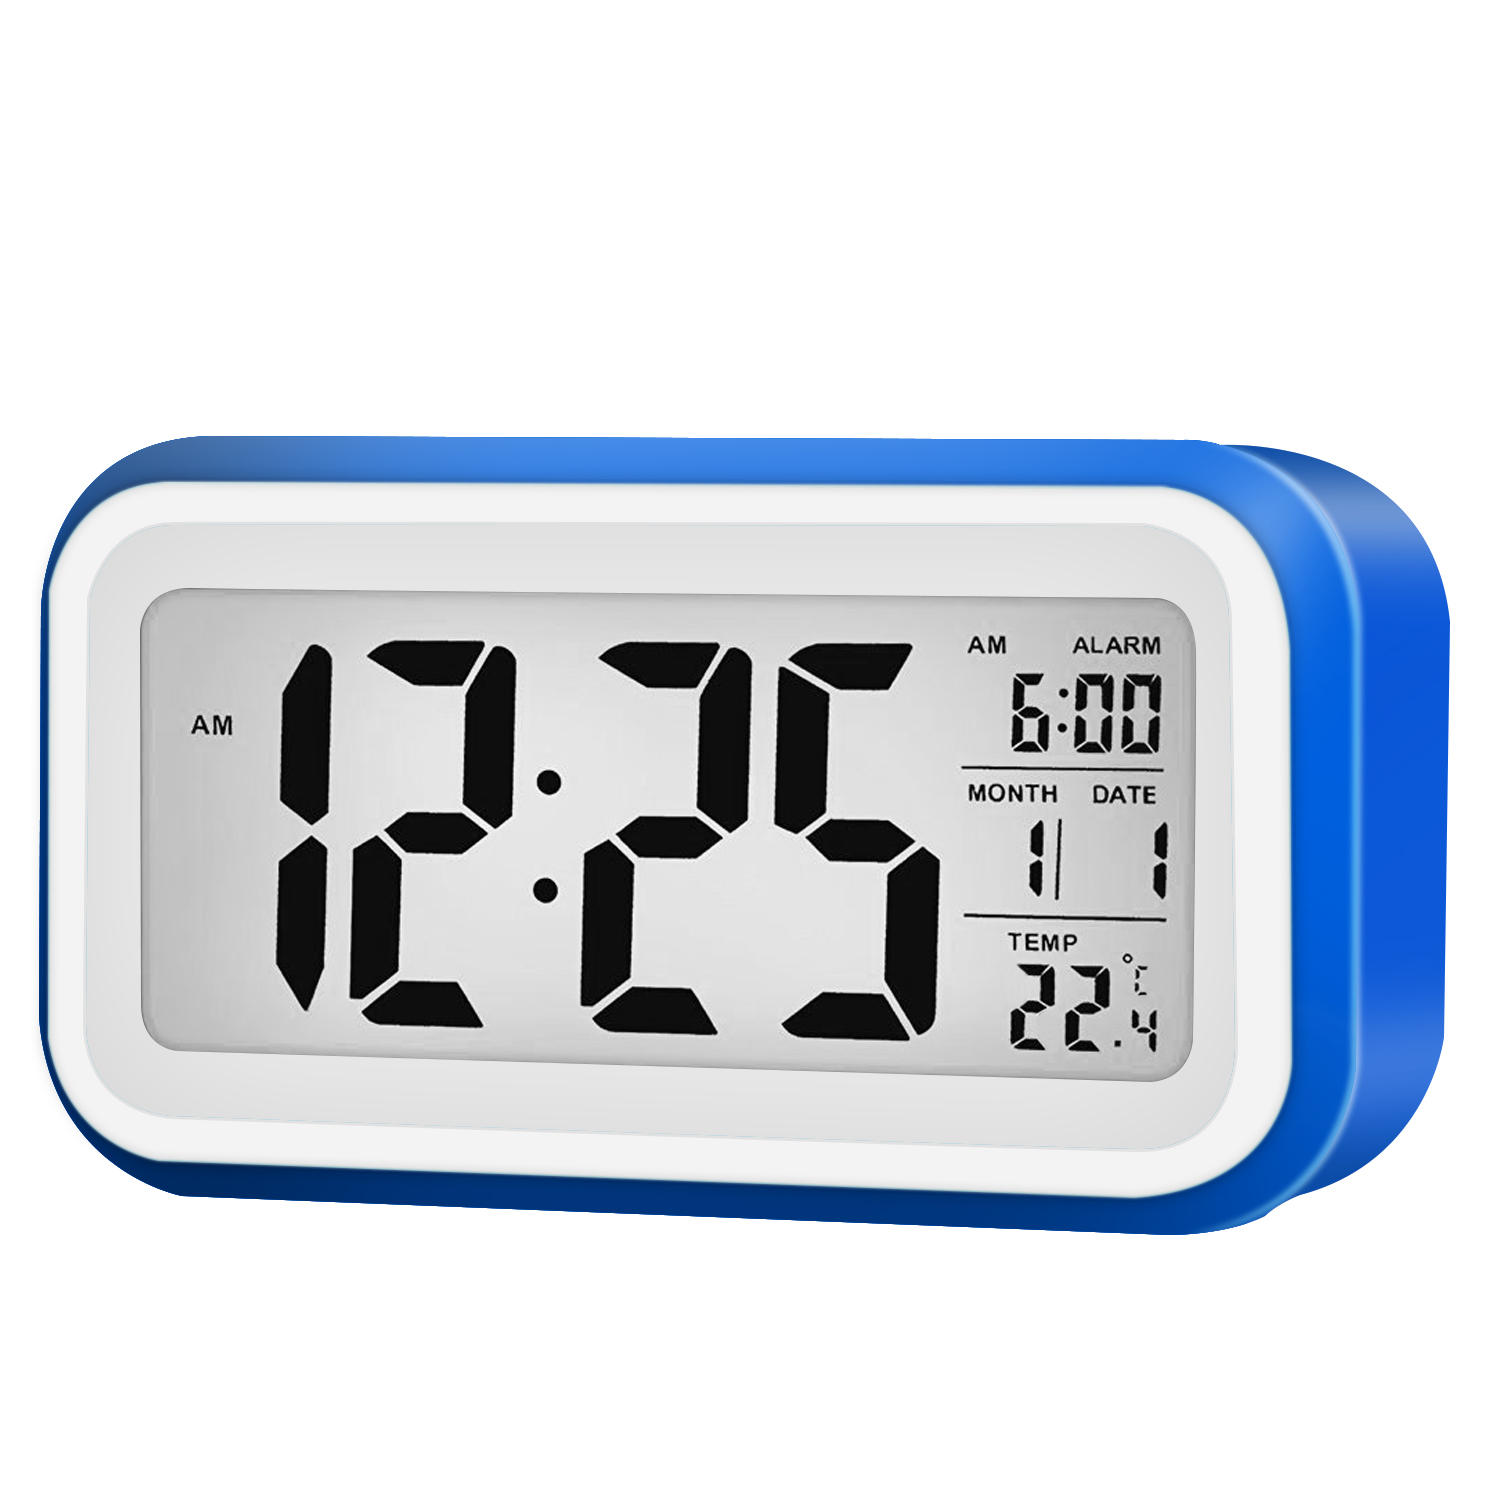 Digital Lcd Display Alarm Clock With 12 24 Hour Switchable